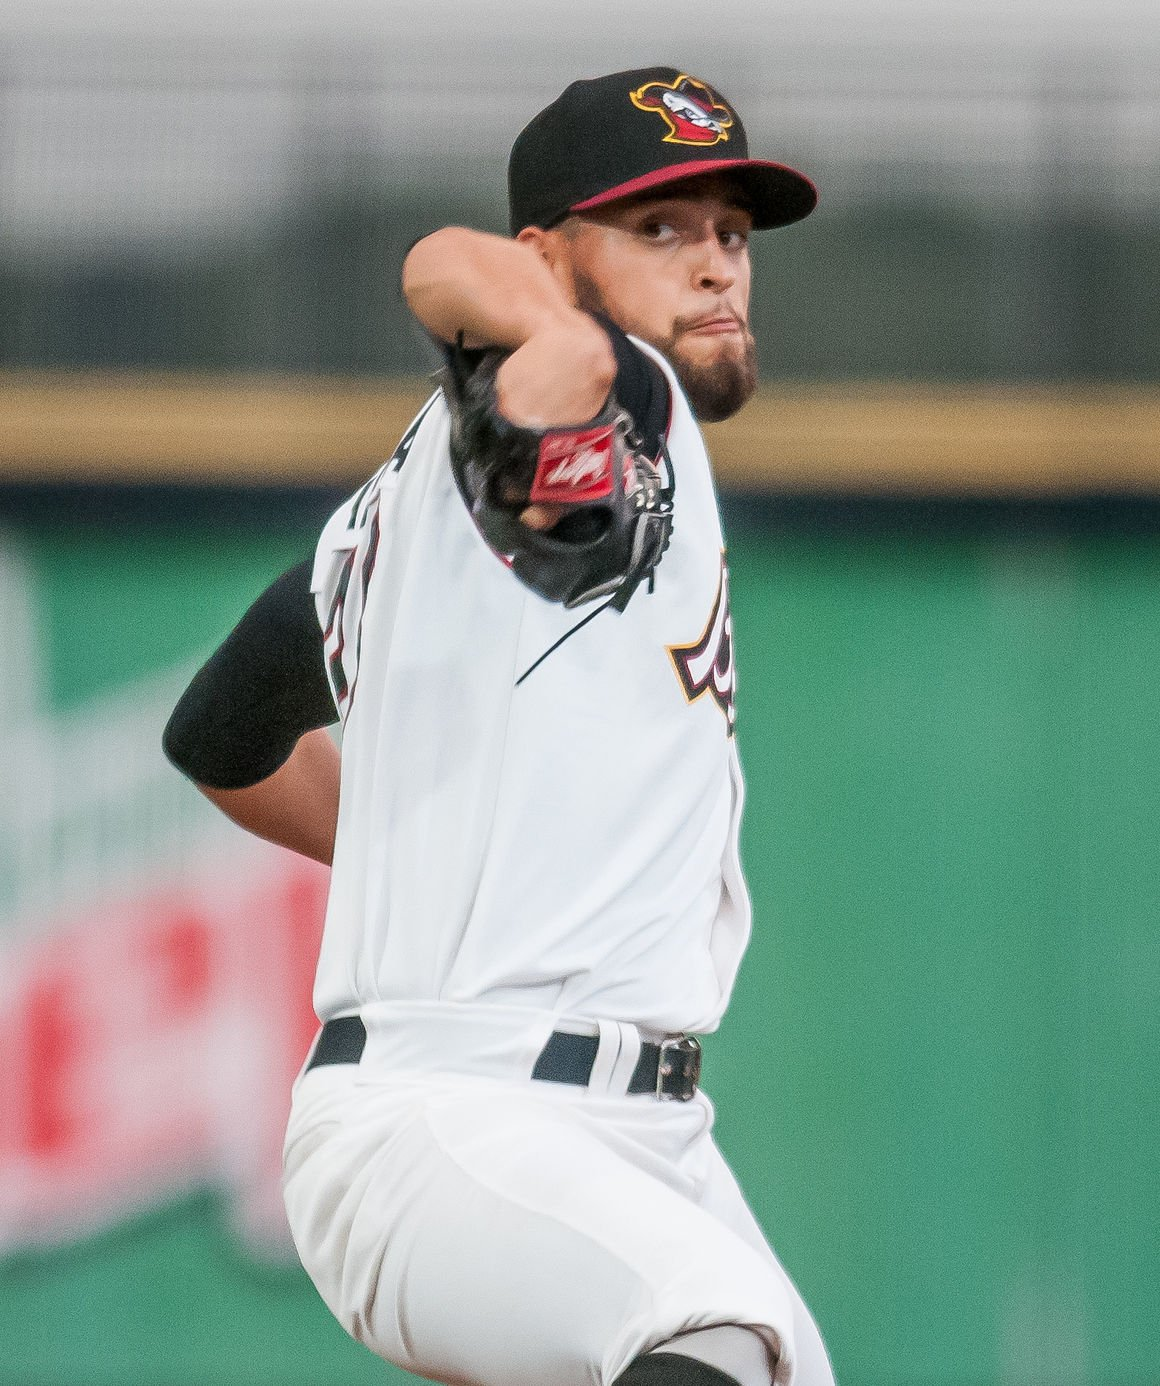 Bandits pick up offensive pace, roll past Lugnuts | QC ...